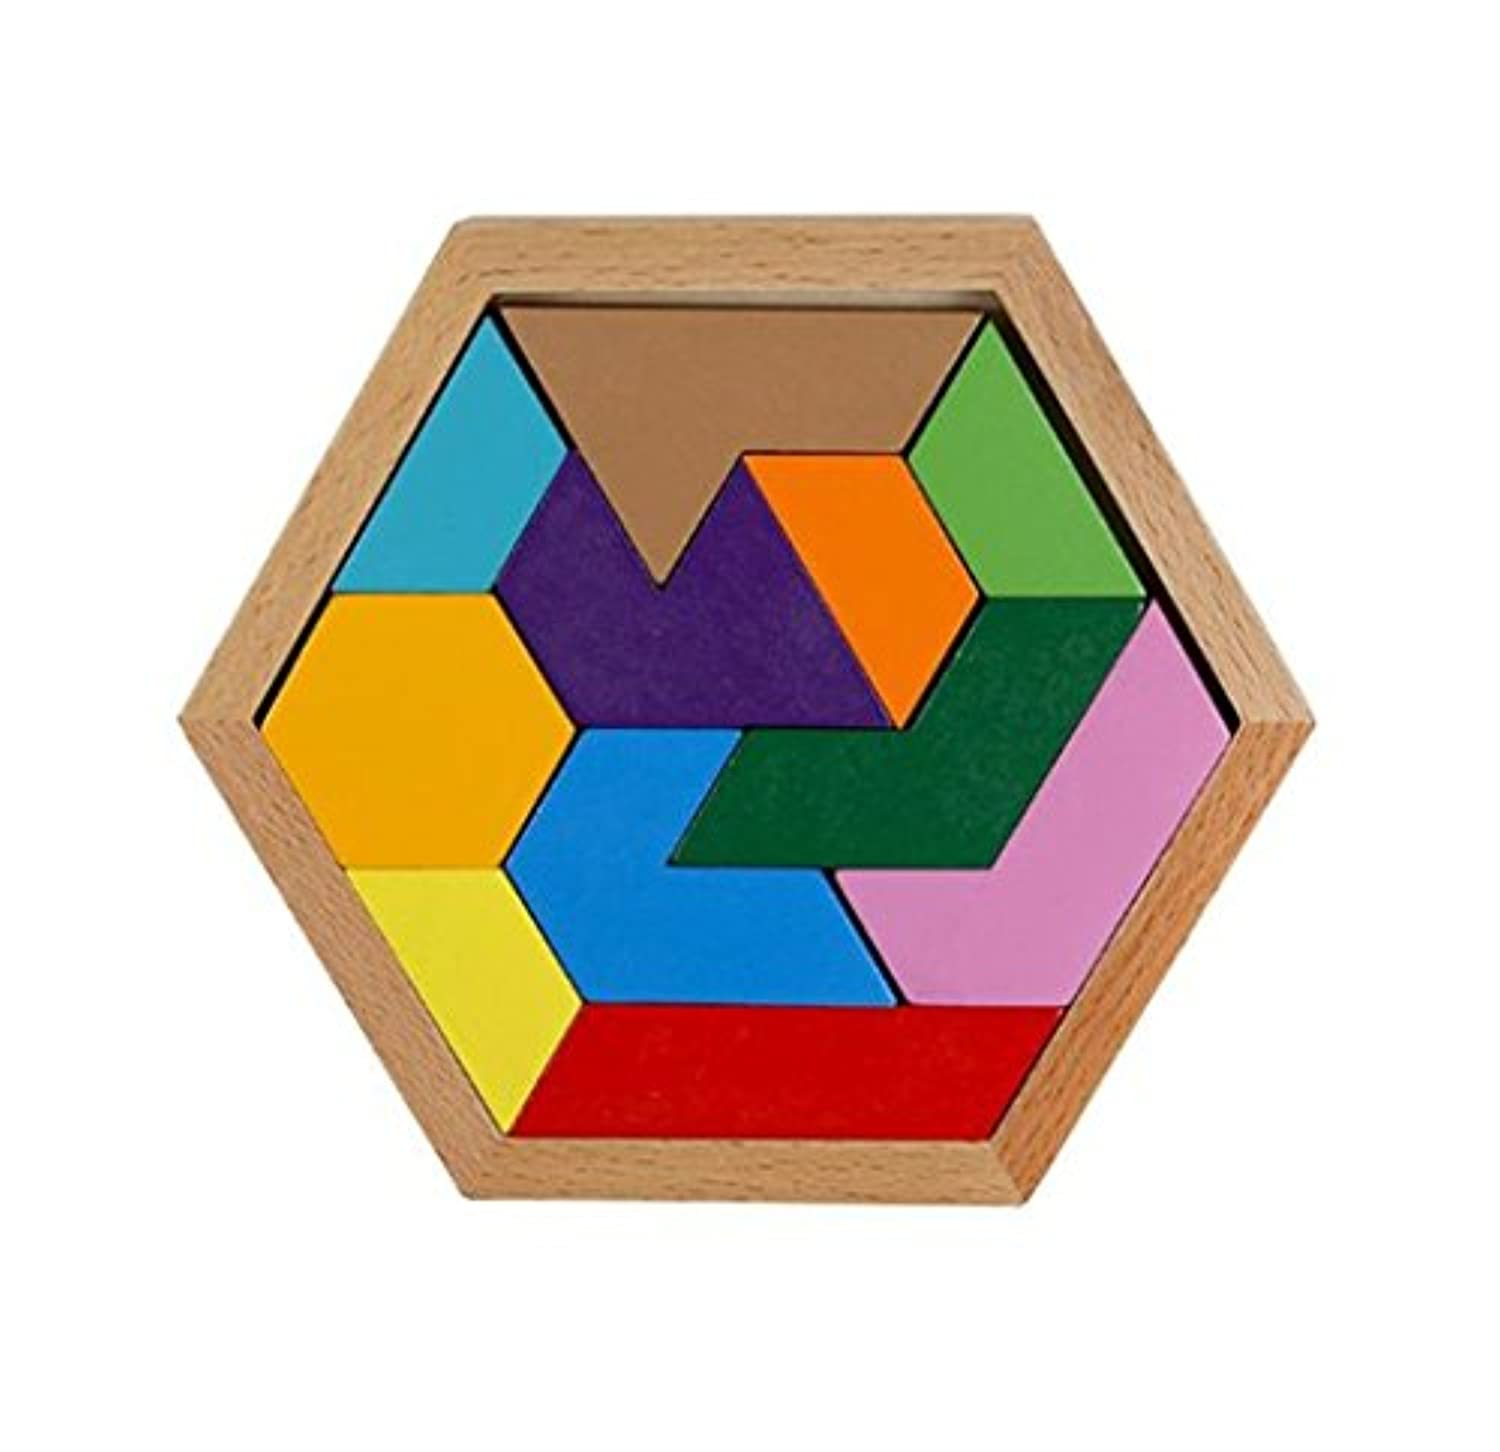 WISDOMTOY 11 Pieces Colourful Wood Brain Teaser Geometry Tangram Jigsaw Lock Puzzle Board Game Educational Toy for Kids